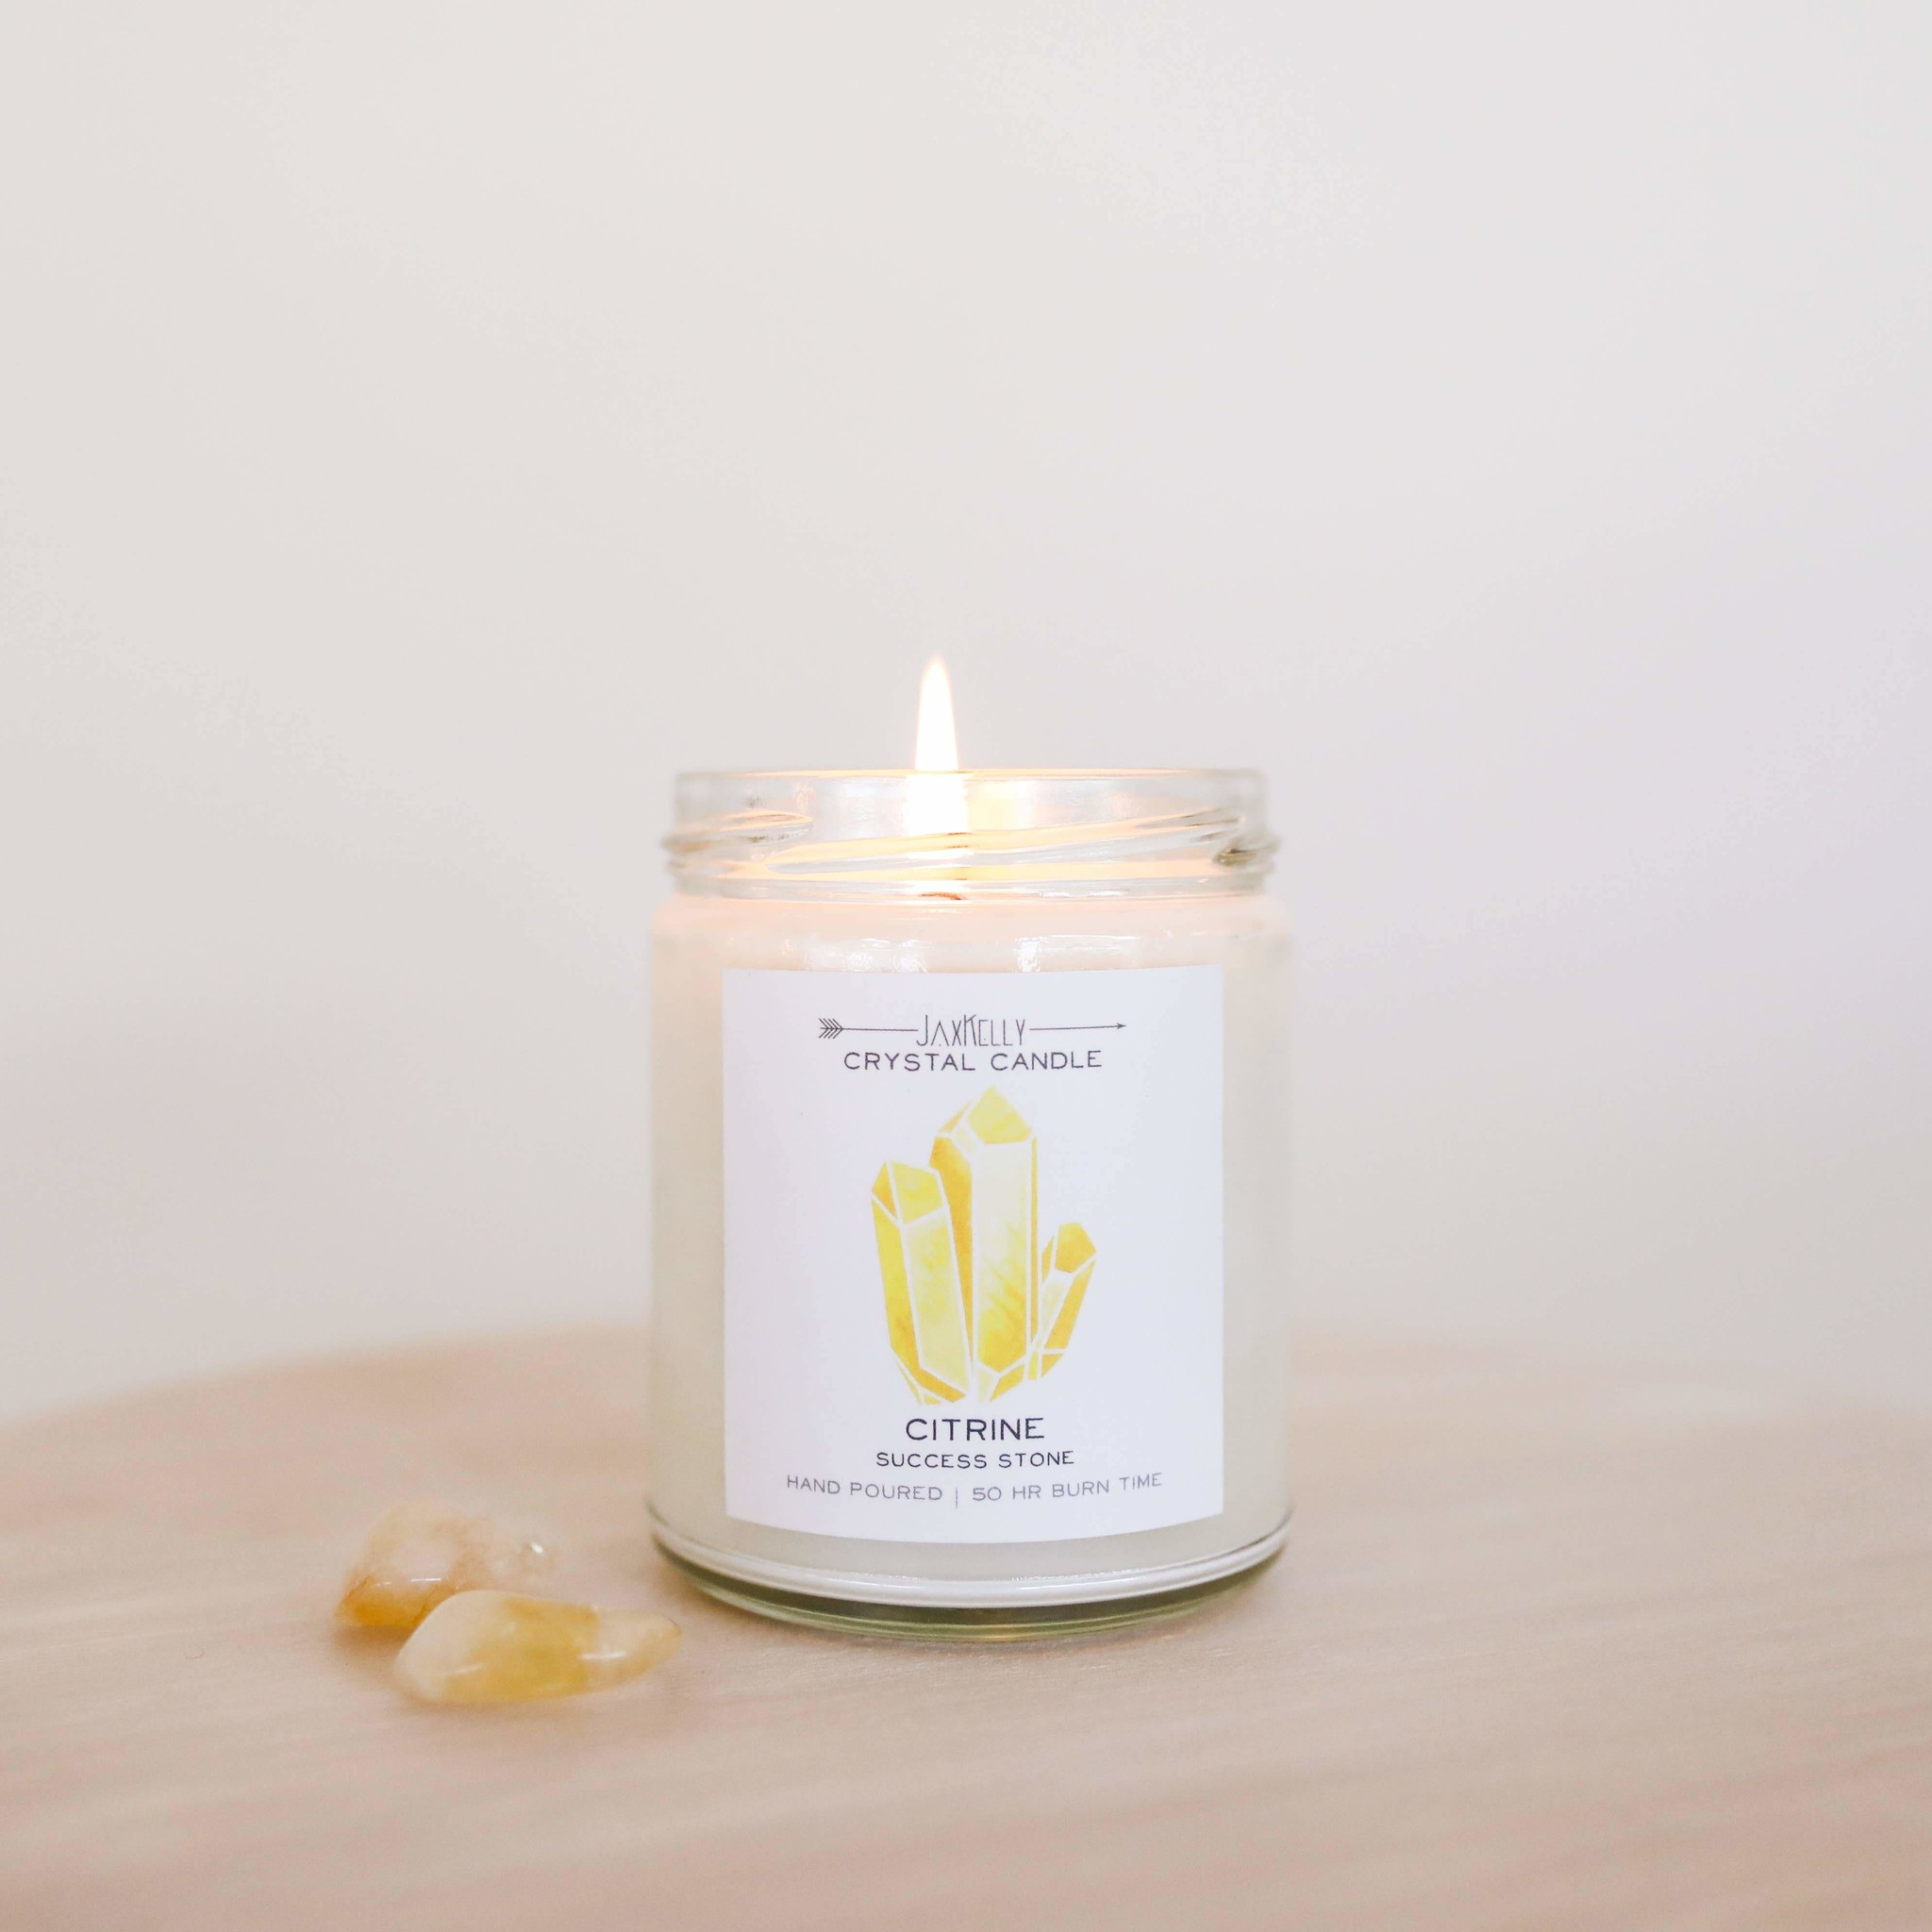 Citrine Crystal Candle - Success